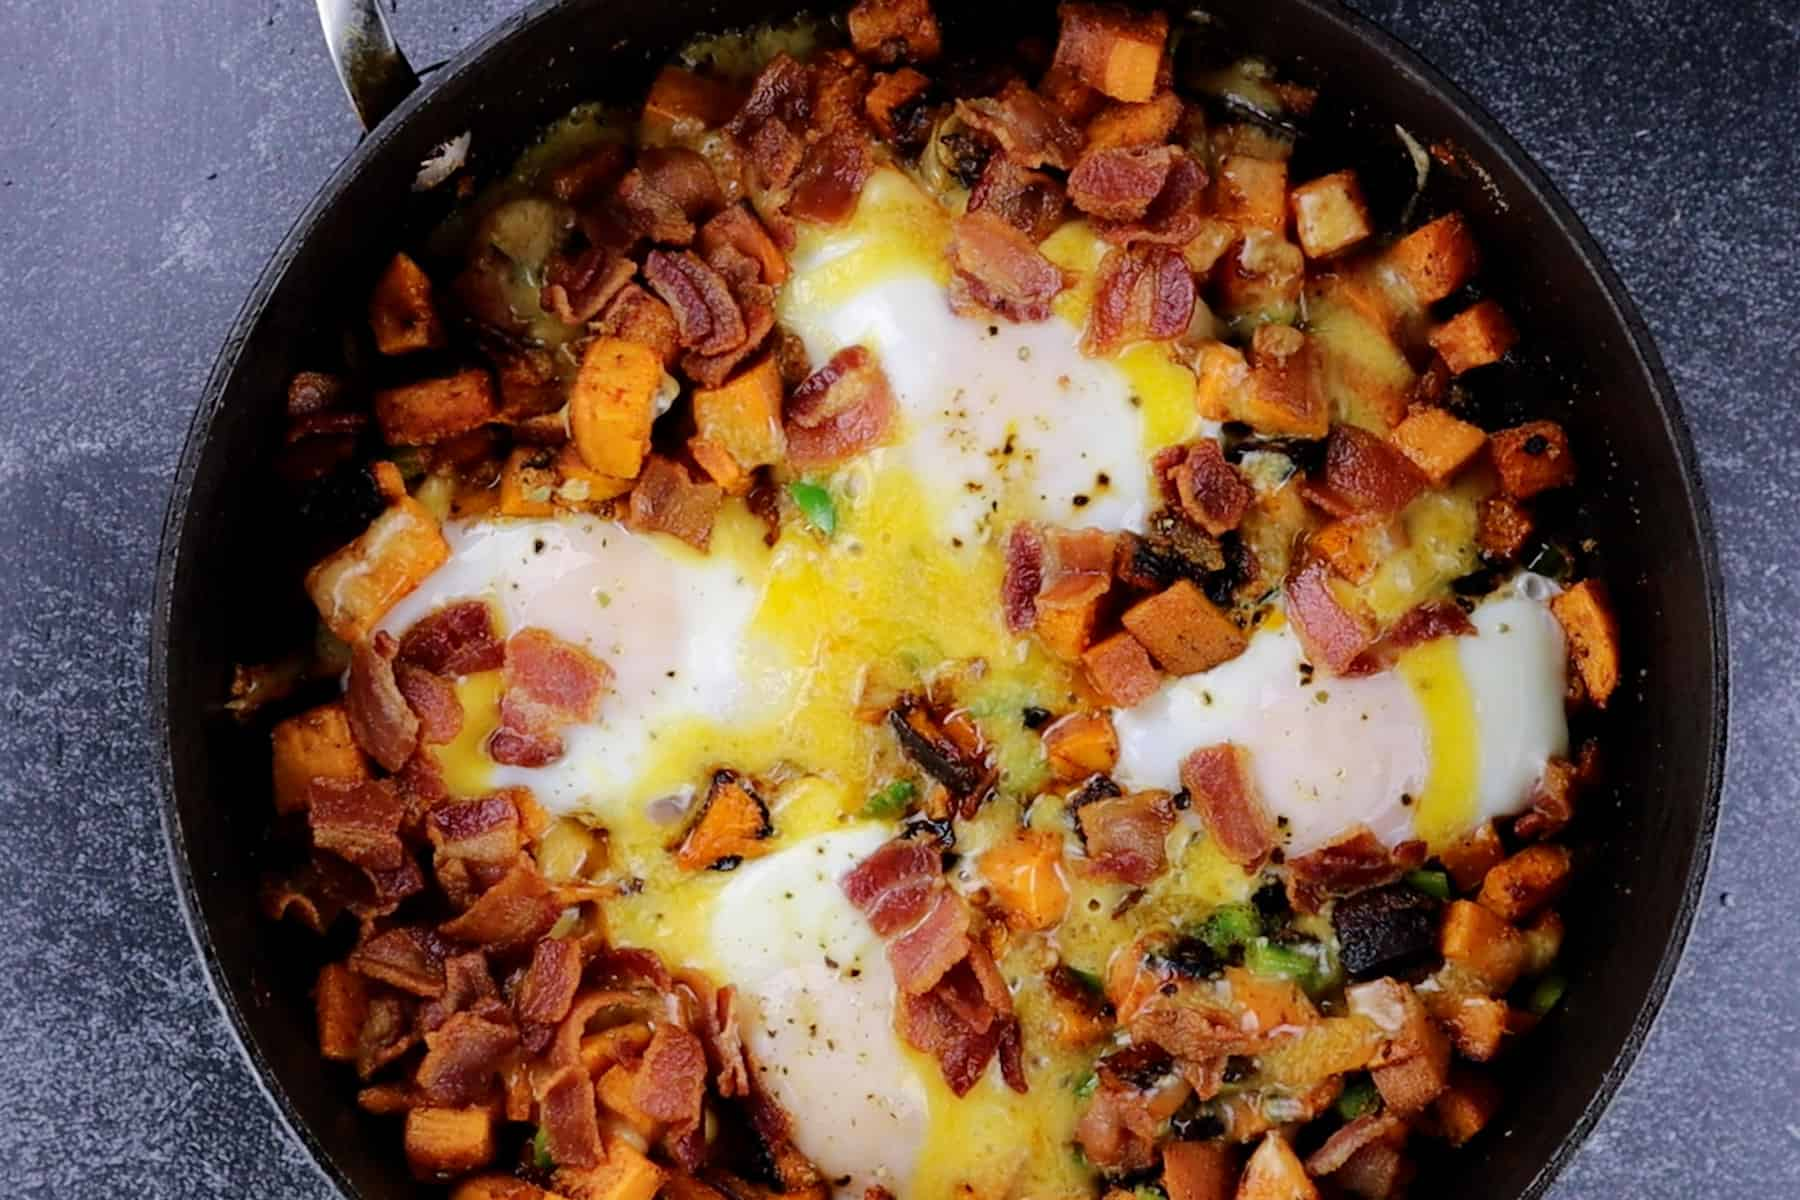 eggs cooked in skillet